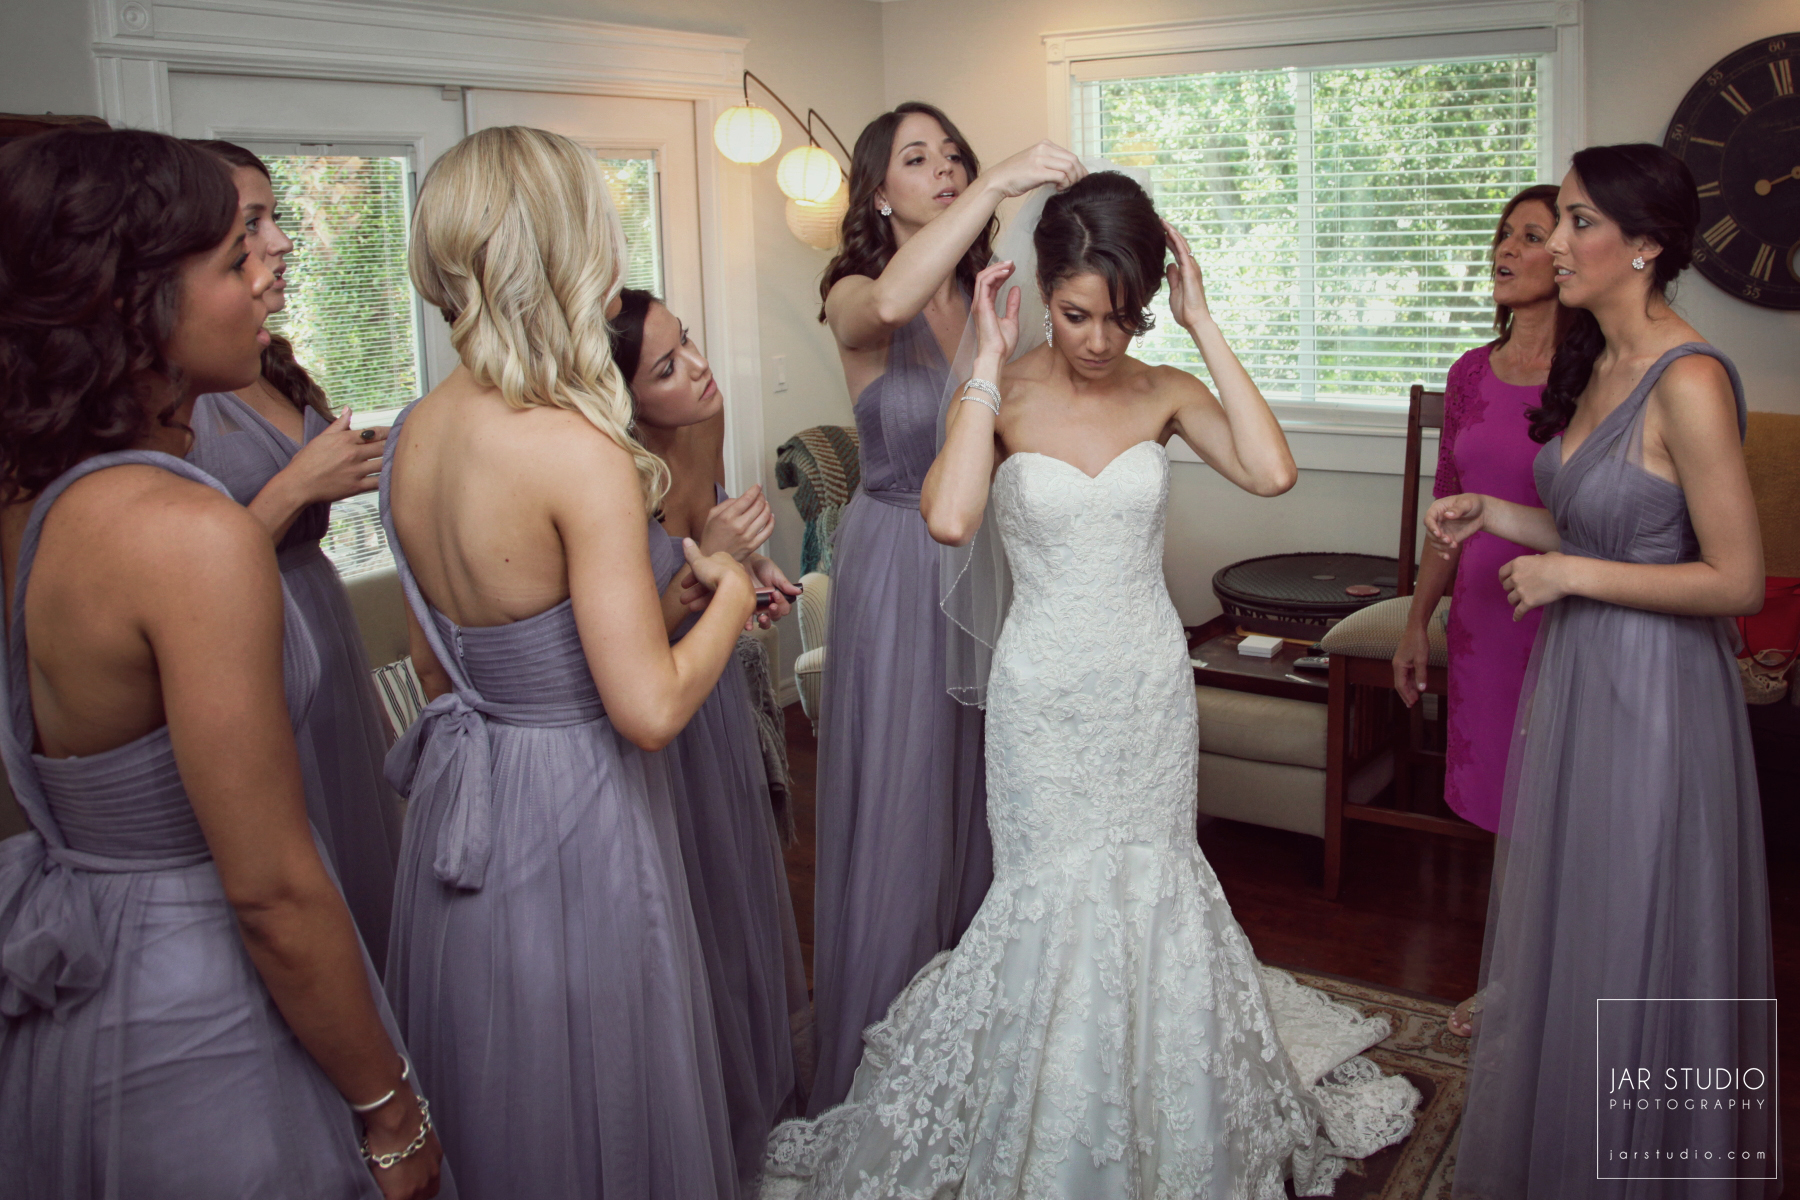 03-getting-ready-lavender-bridesmaid-dresses-jarstudio-photography.JPG